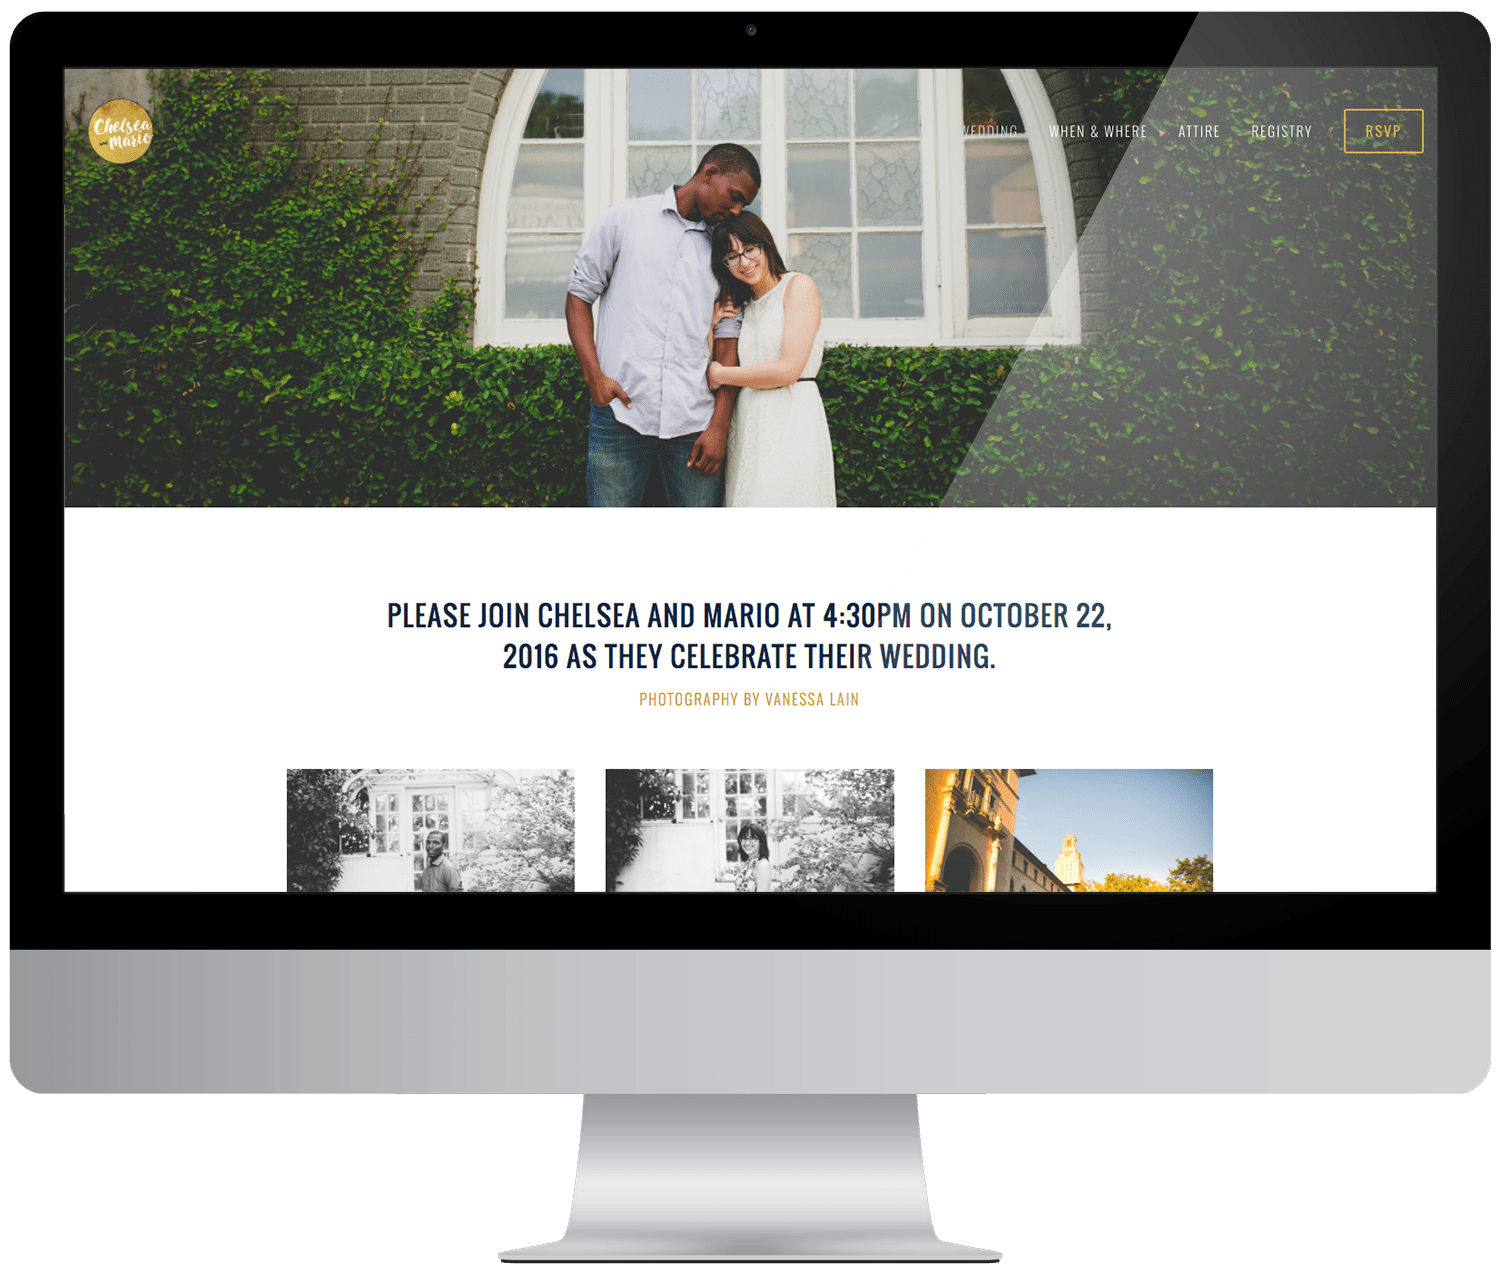 a Squarespace wedding website example with a large top photo and three smaller photos shown on a computer monitor